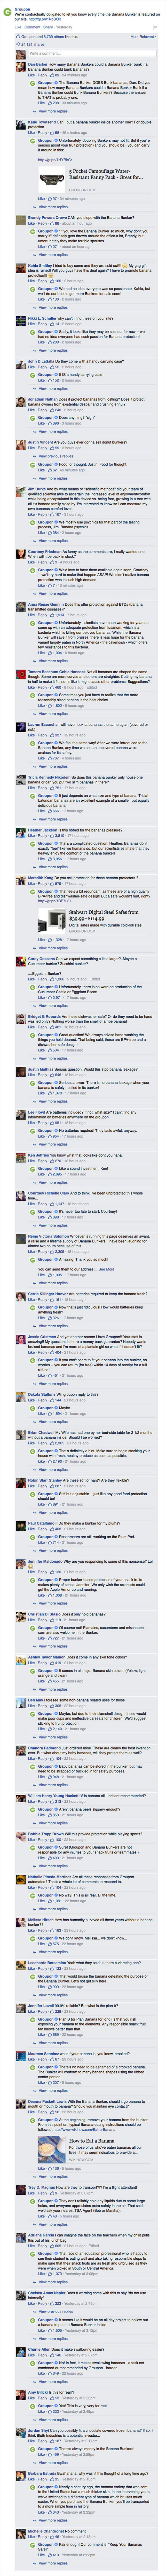 Groupon Banana Bunker Caused a Funny Comment Overload 01